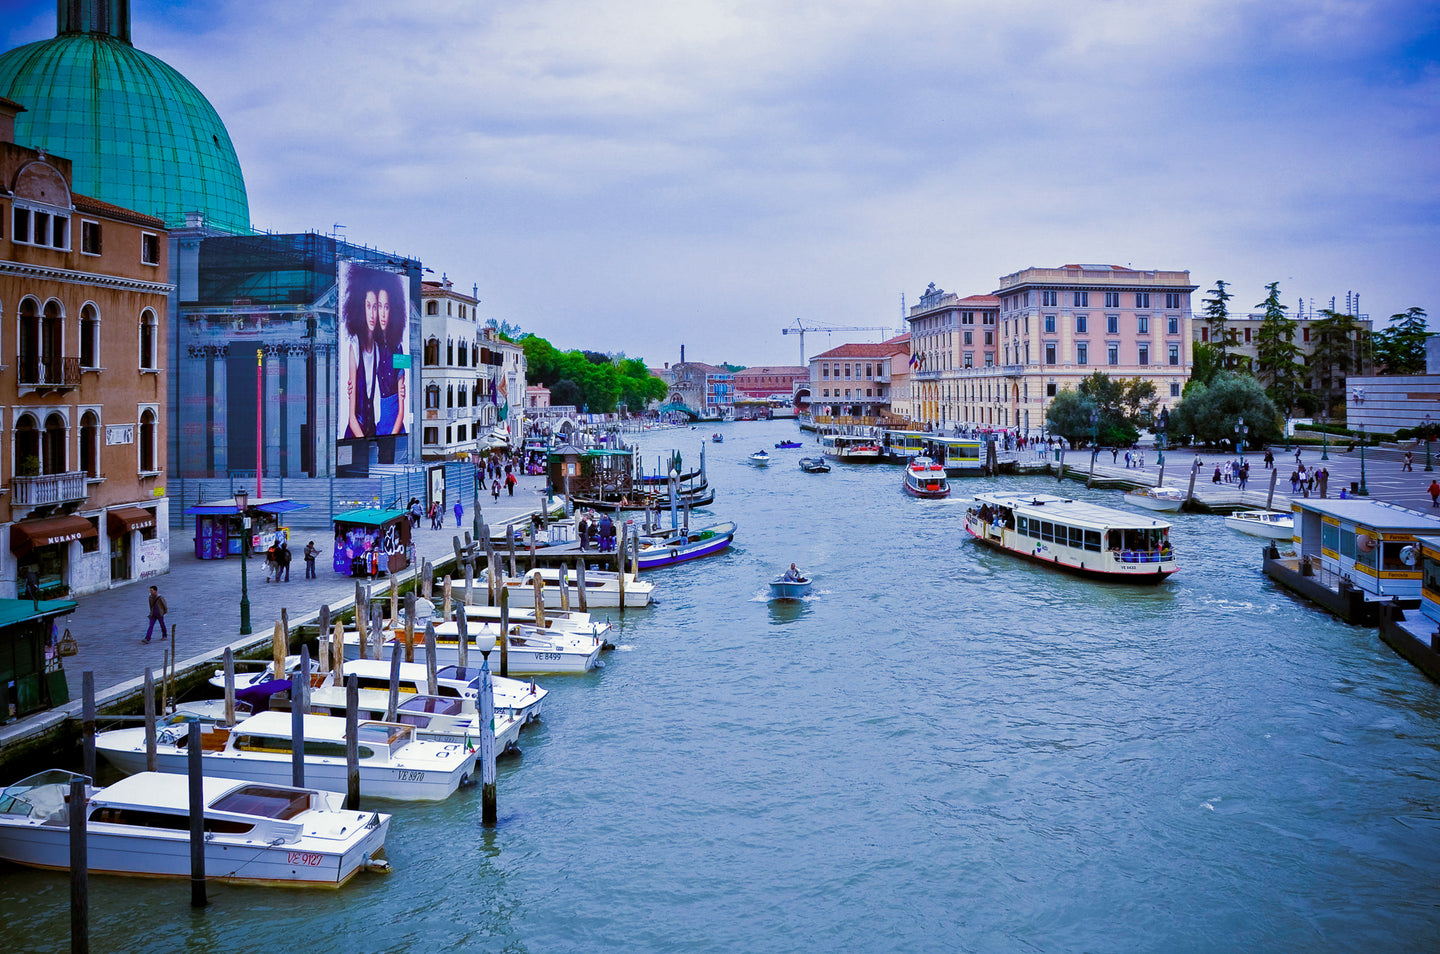 Italy waterways 2 - Tracy McCrackin Photography